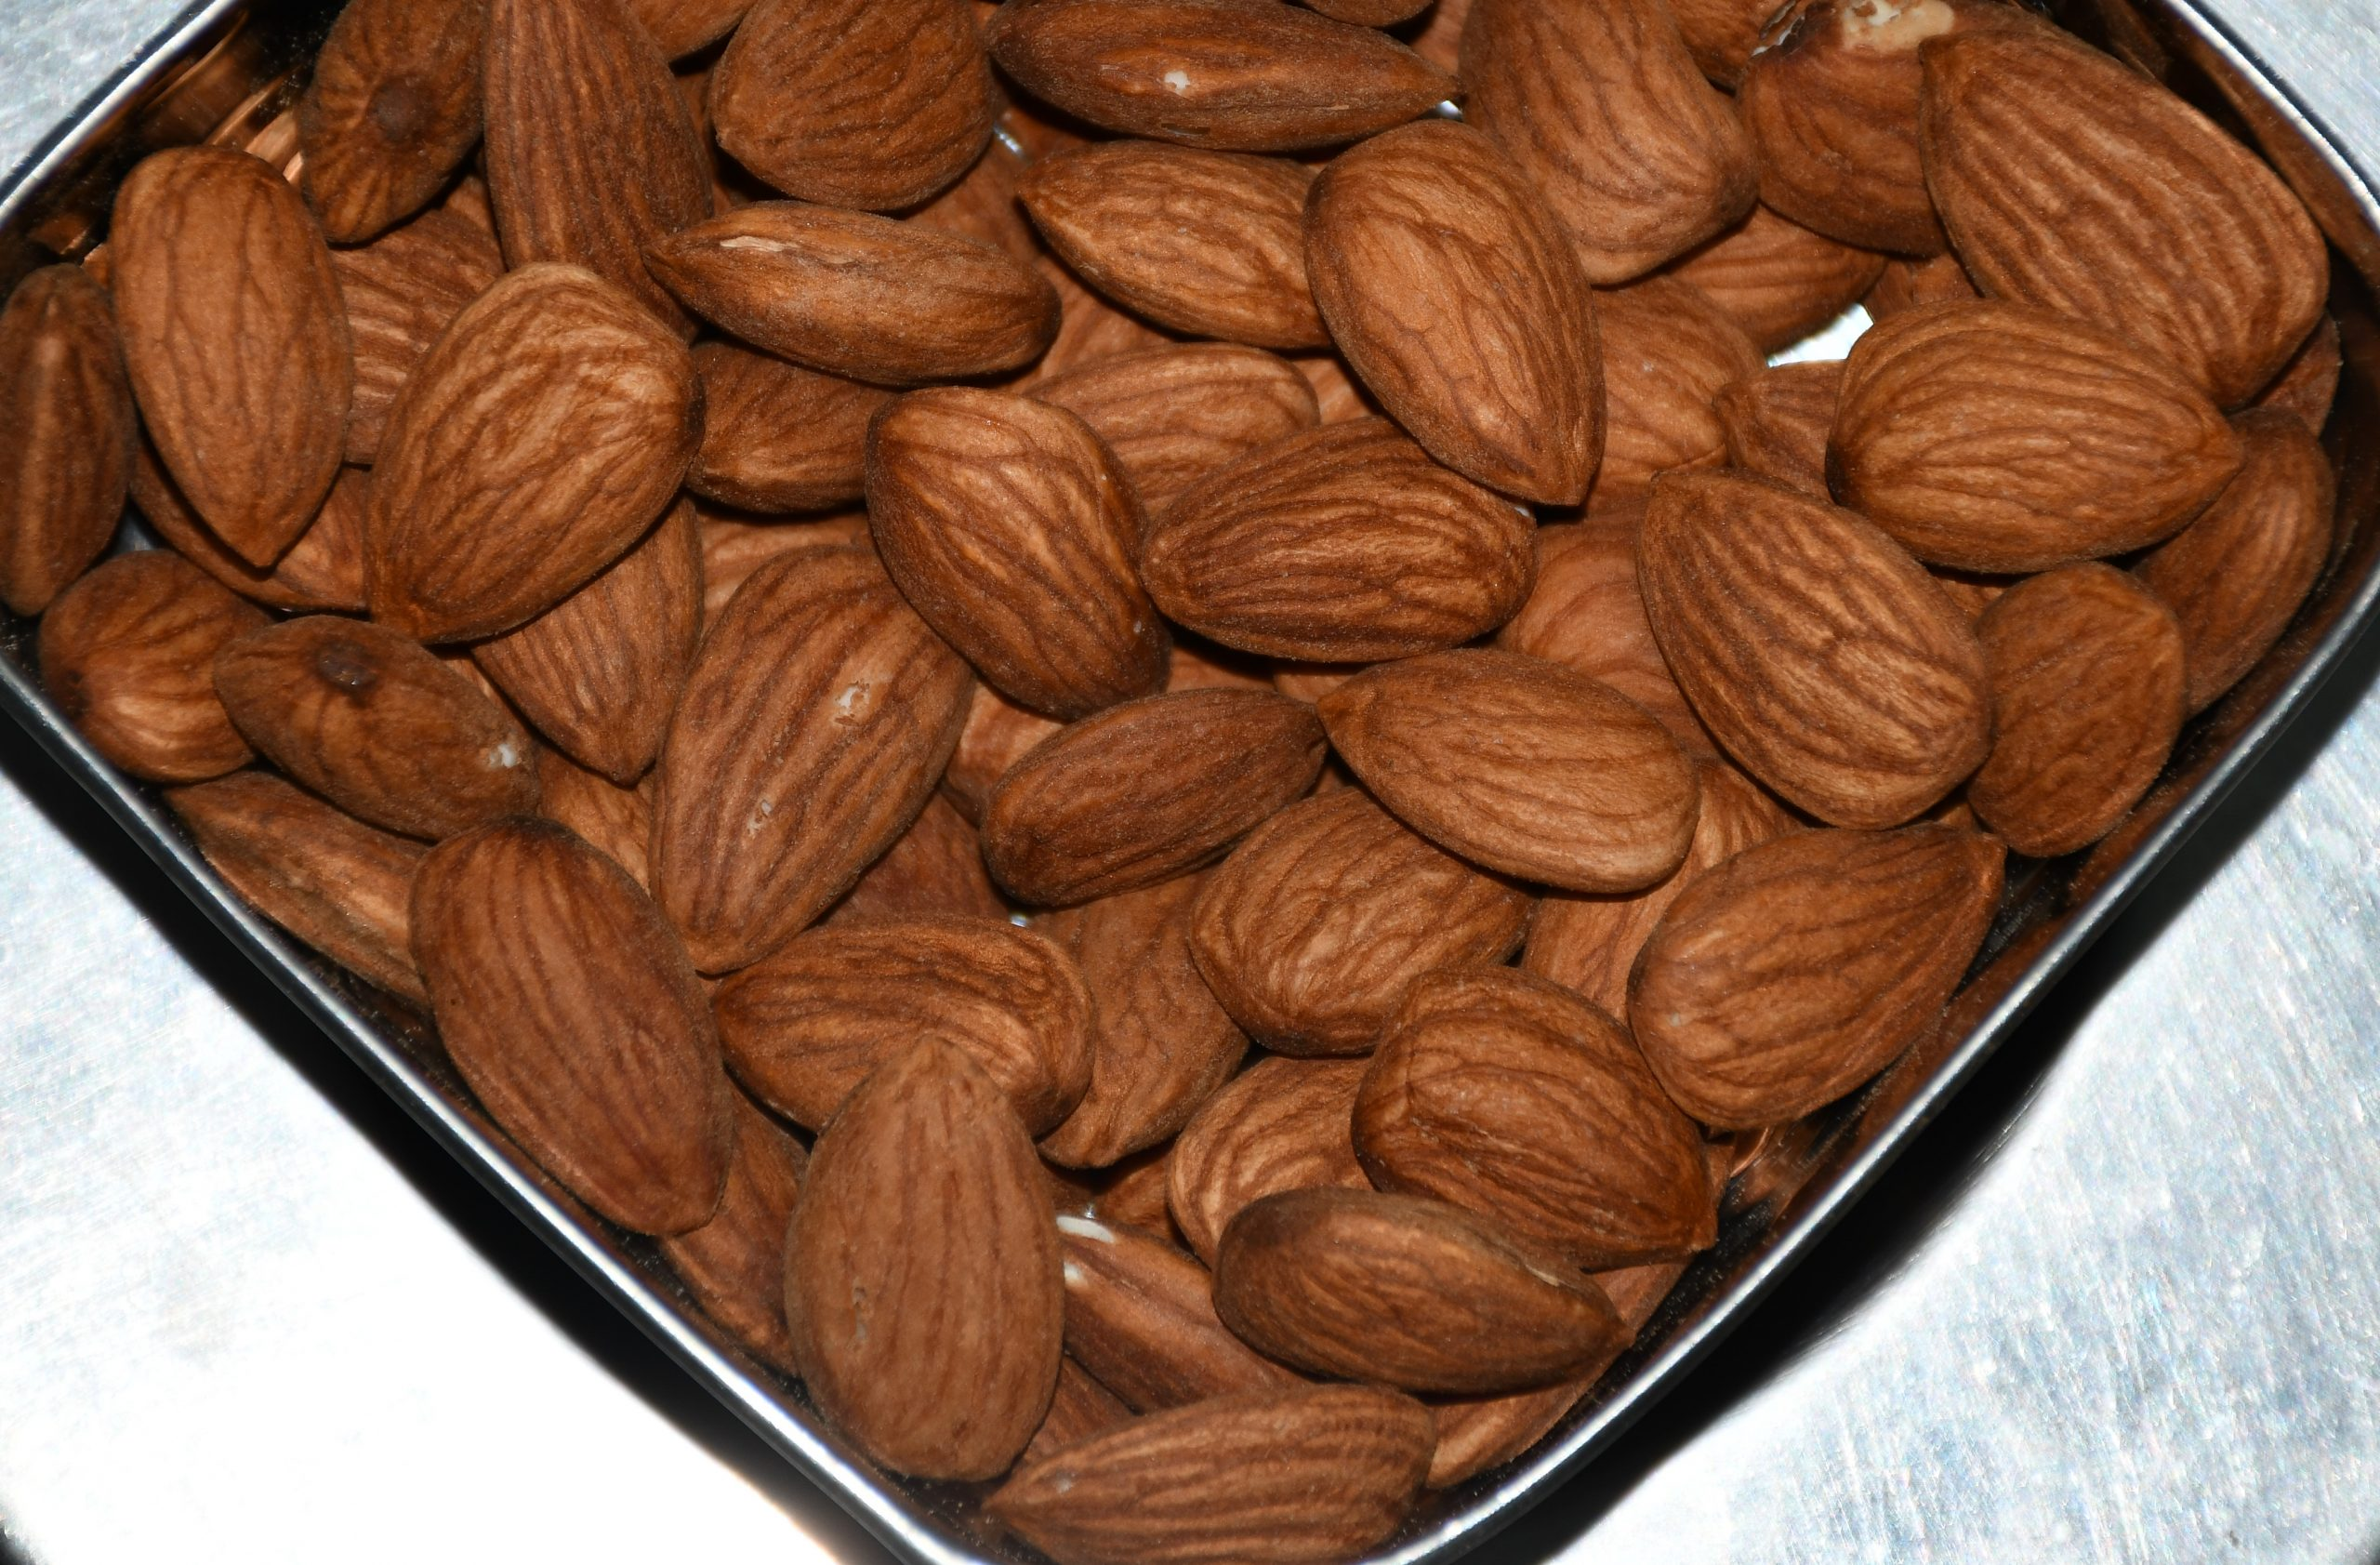 A bowl full of almonds